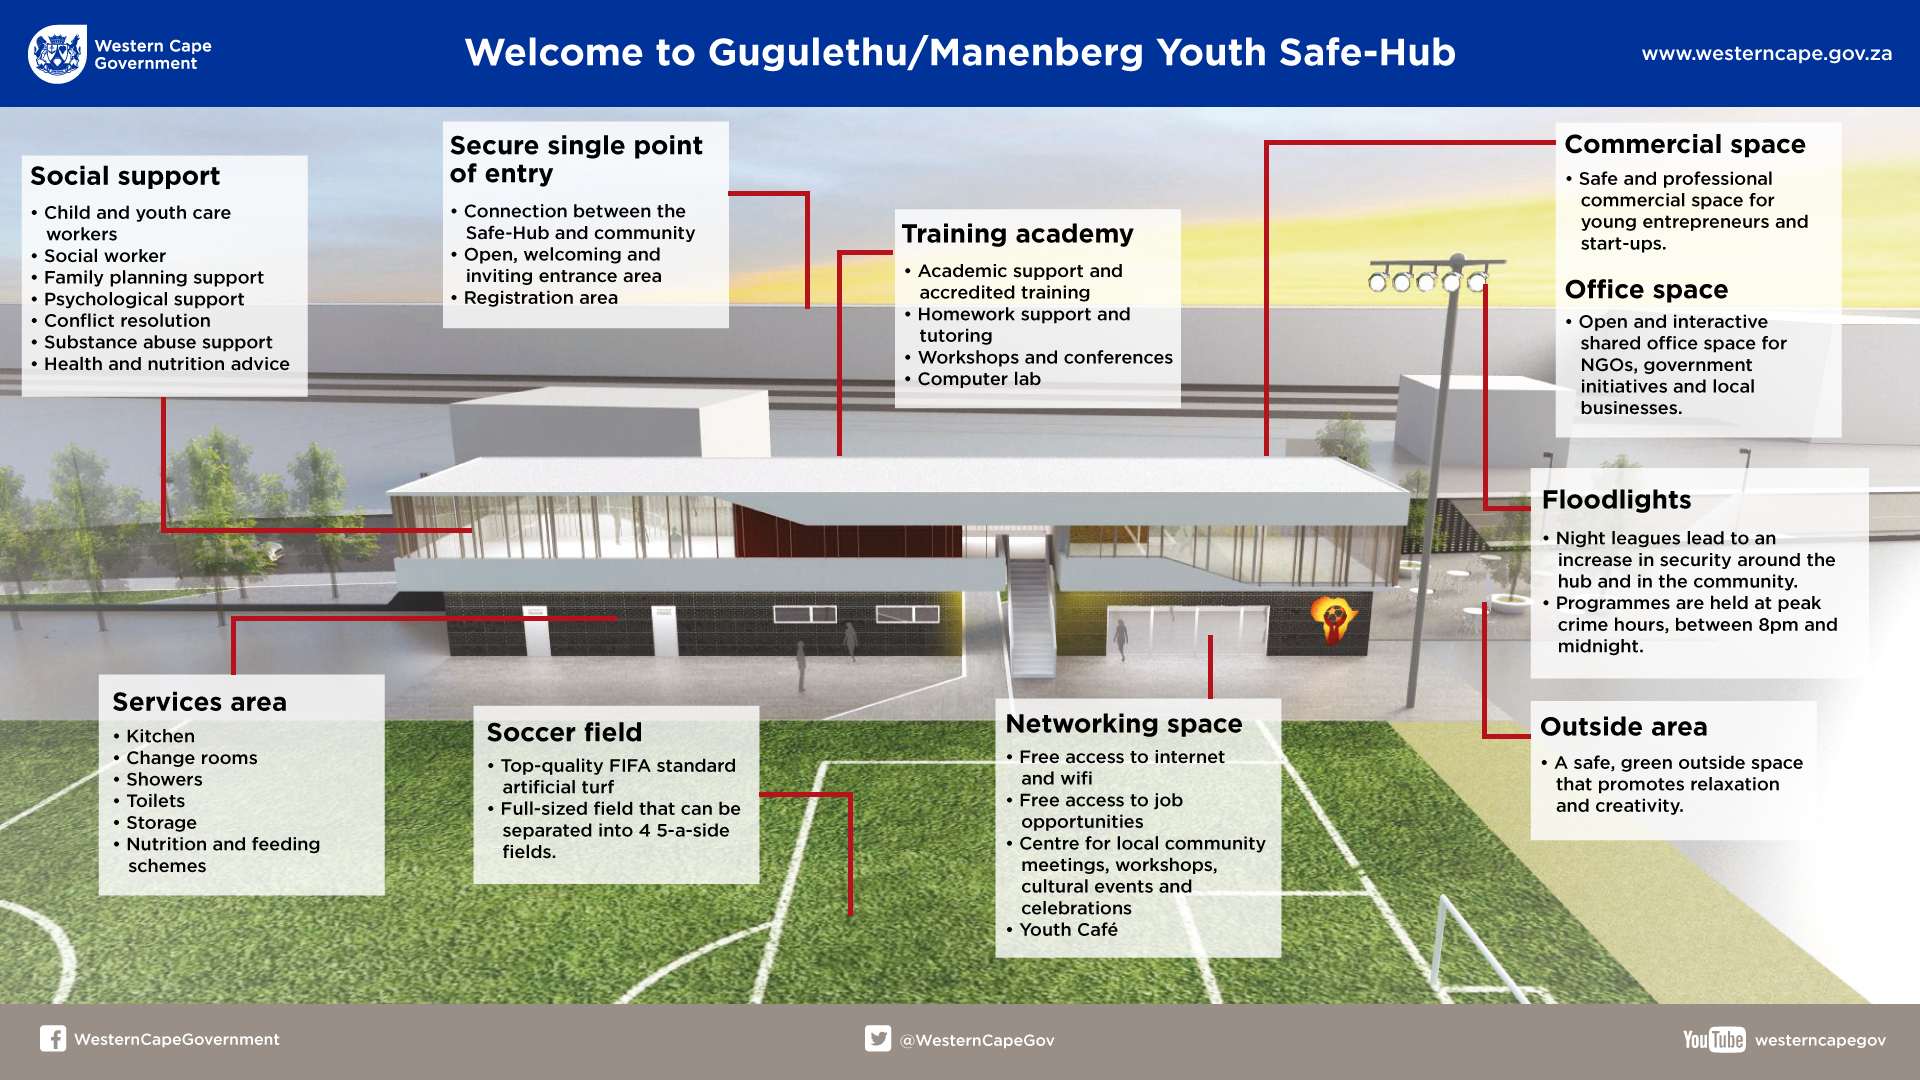 New Youth Safe-Hub